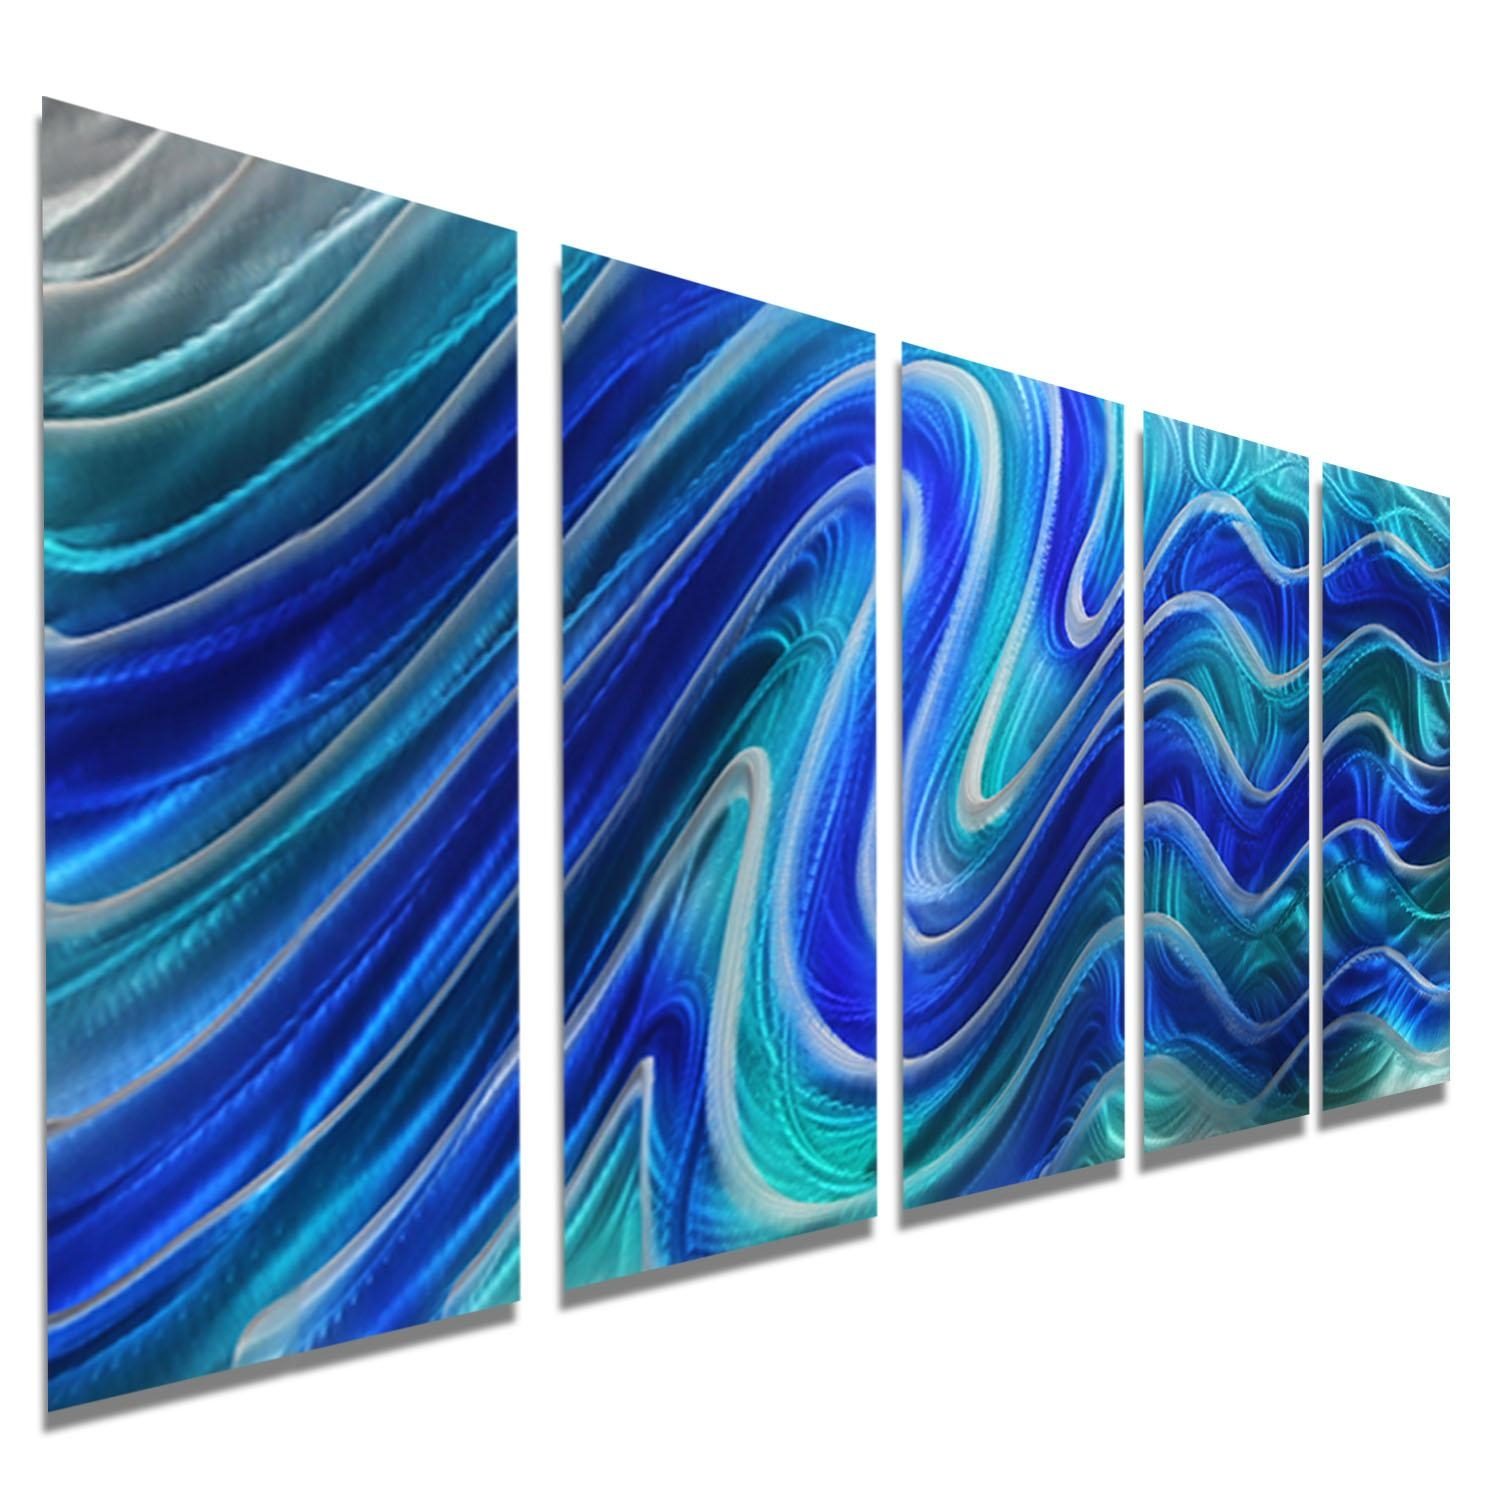 Paradise Plunge – Blue, Teal And Silver Metal Wall Art – 5 Panel Intended For Teal Metal Wall Art (View 17 of 20)